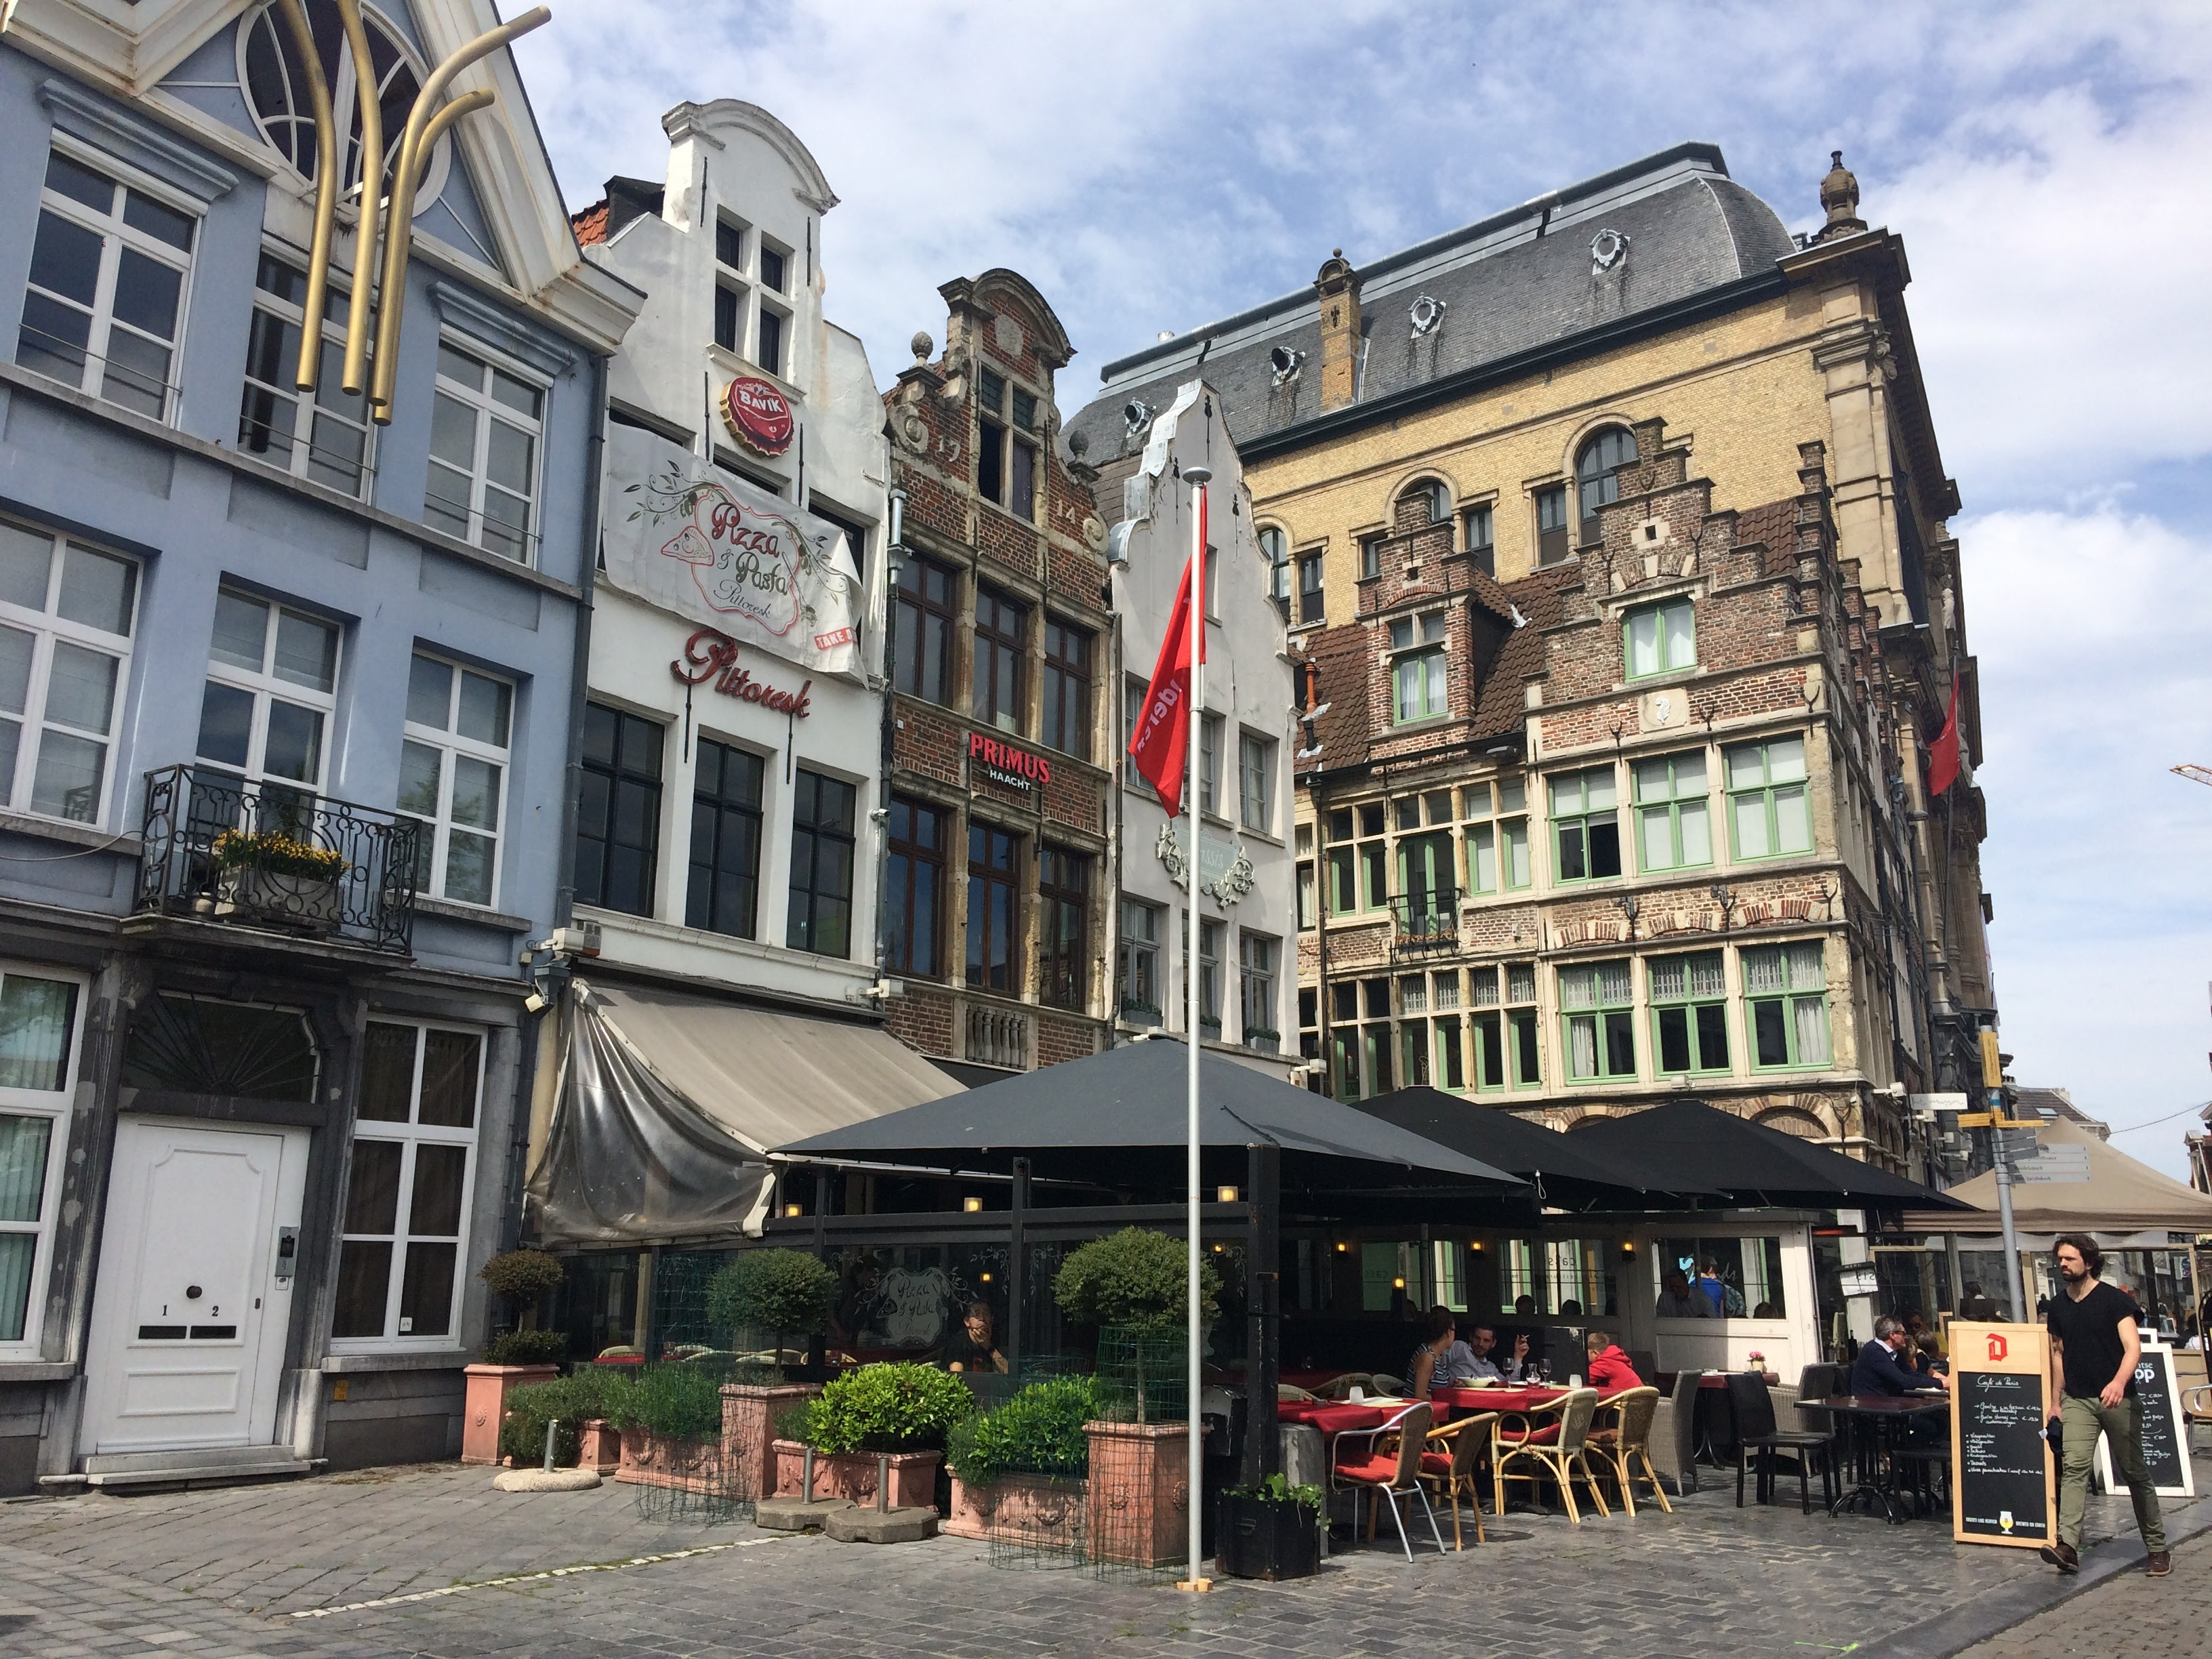 Top places, brussels, begium, travels, travelling, backpacking, Europe,